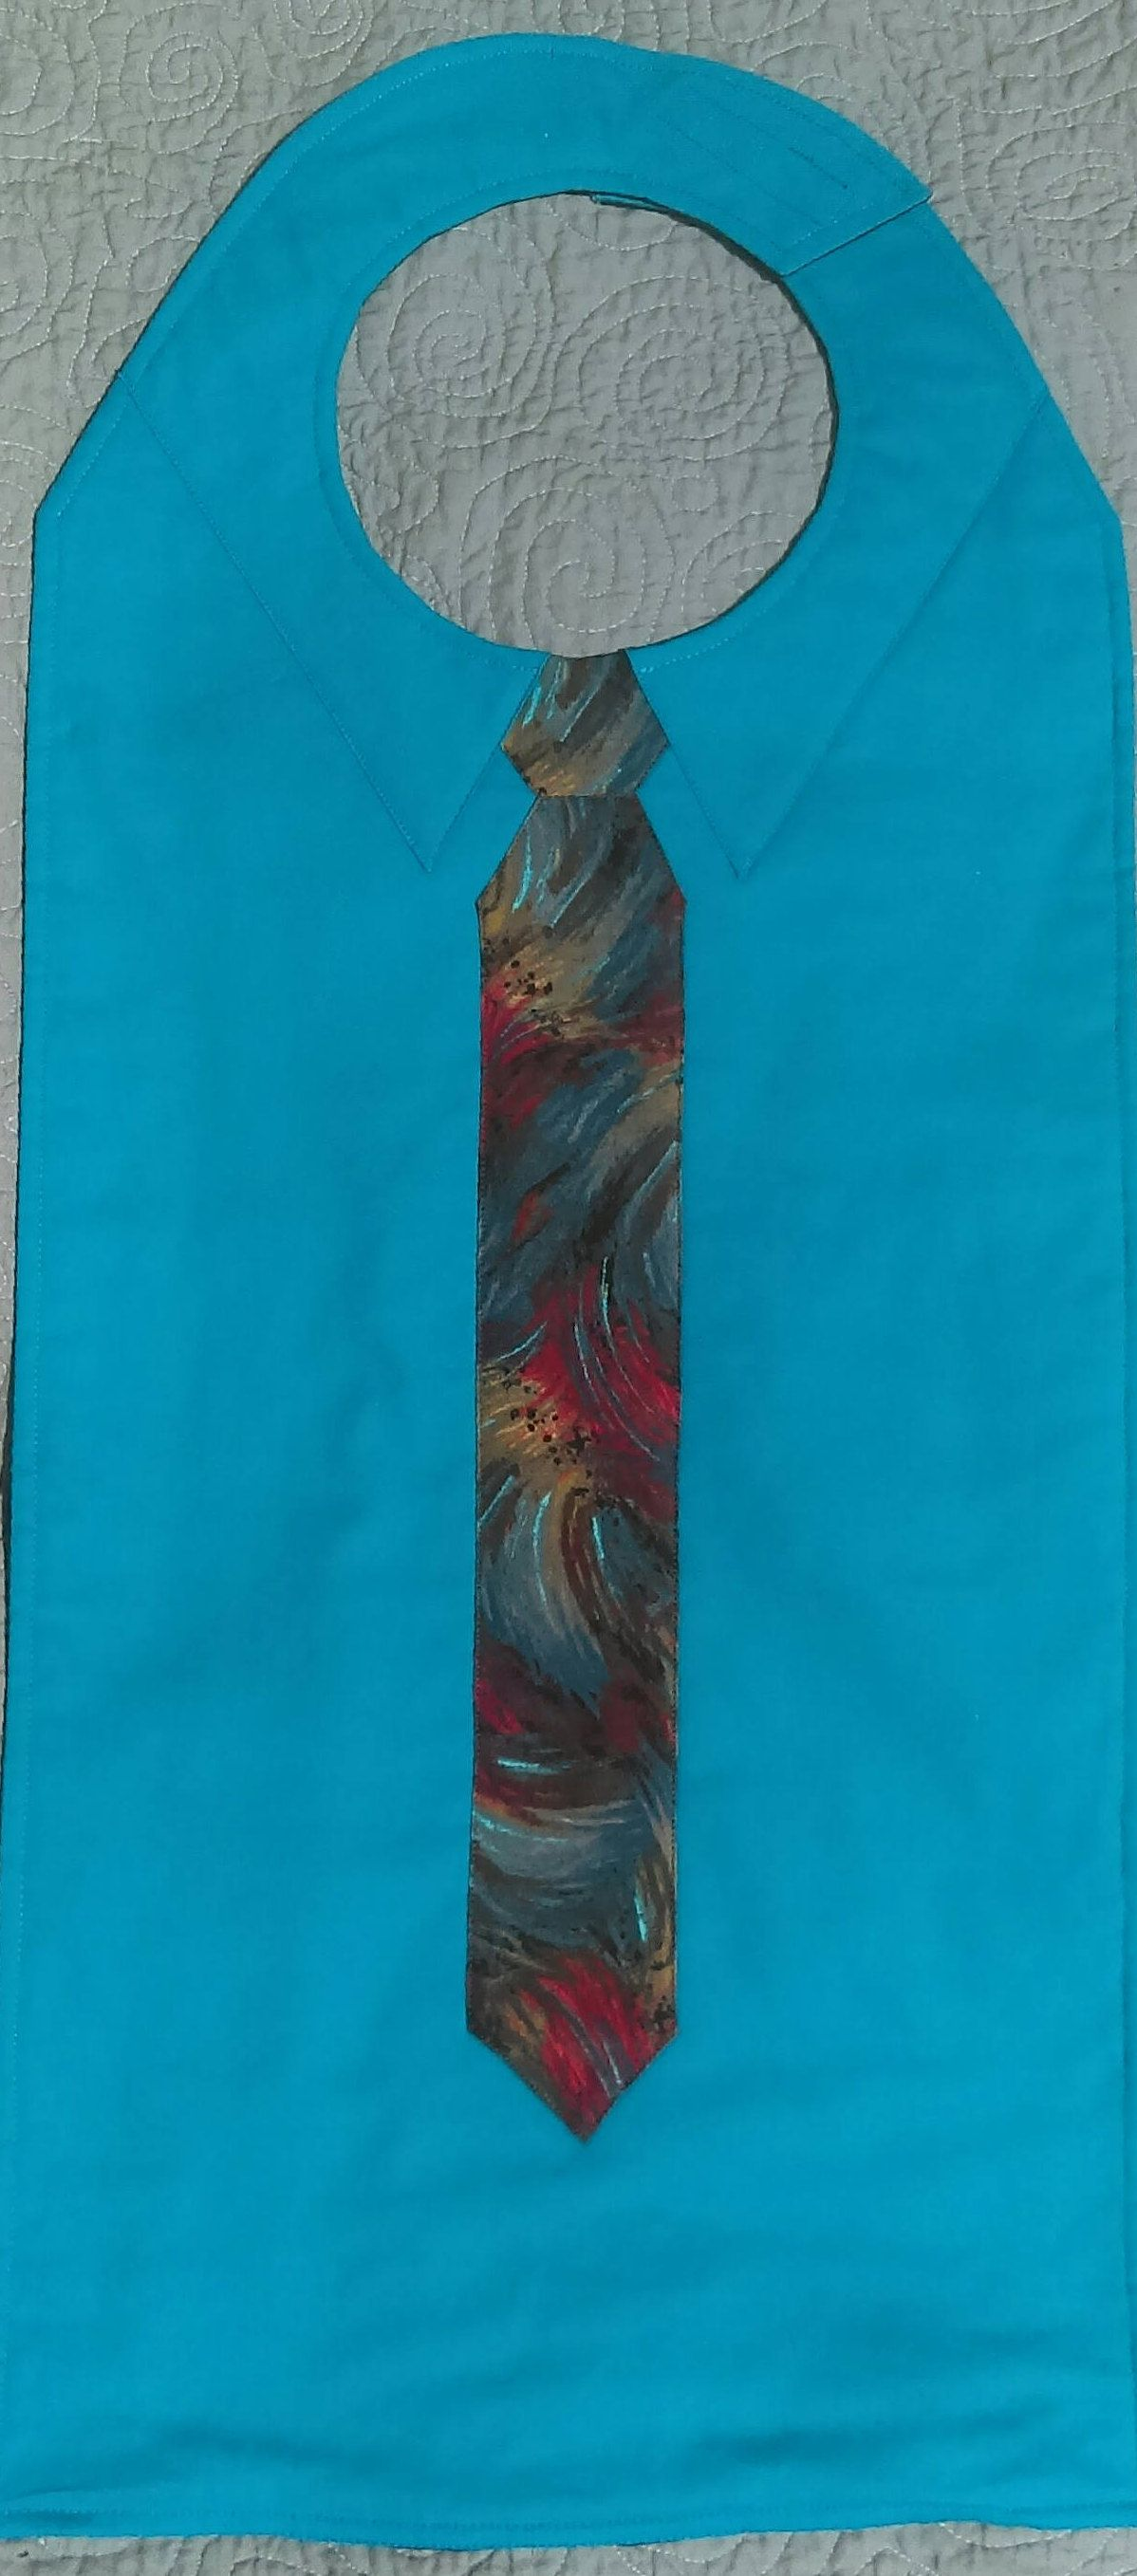 Adult Bib for a Man in Aqua with Snazzy Art Tie for Handsome Dignity